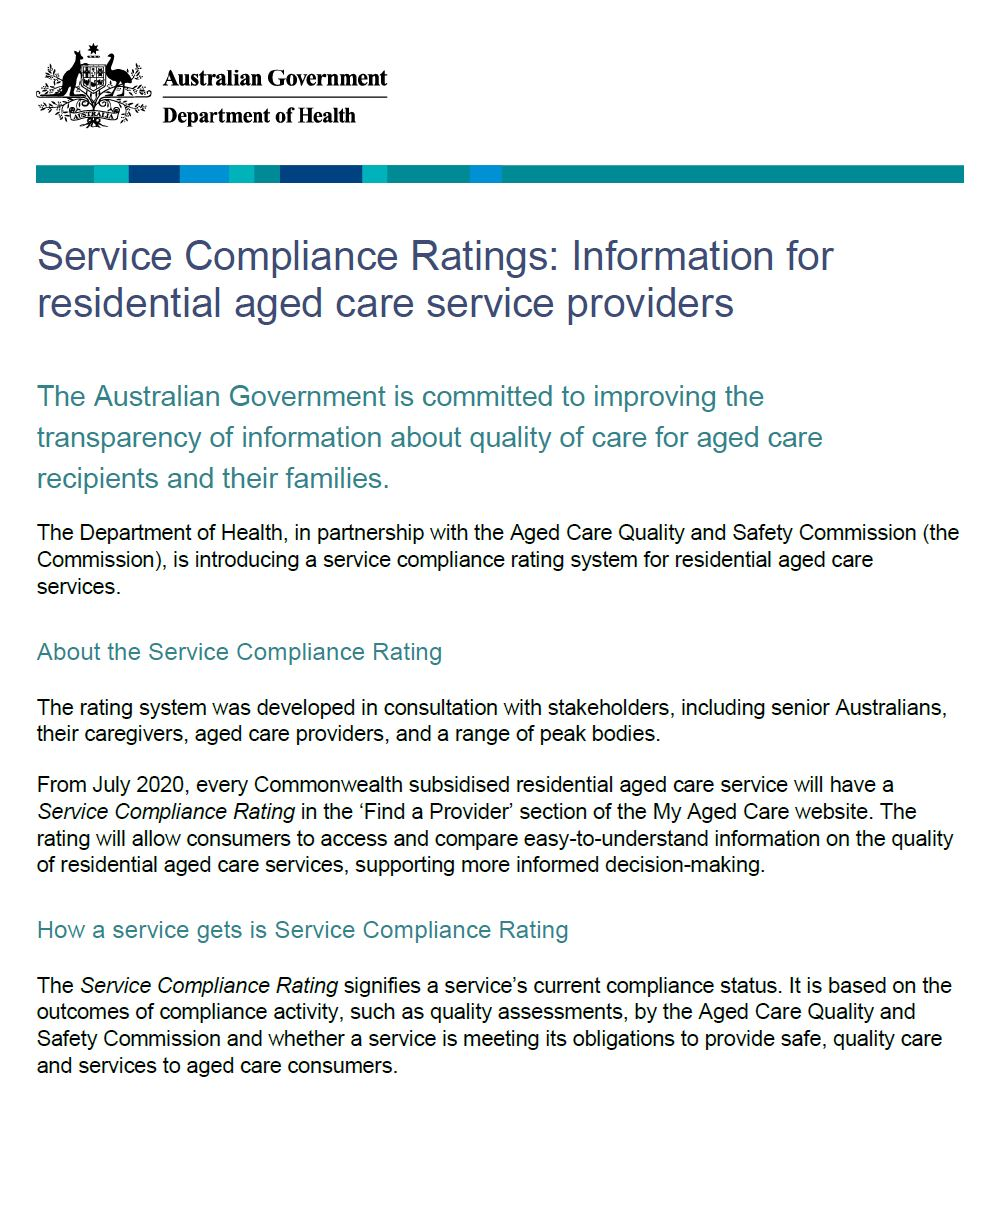 Service Compliance Ratings Fact Sheet image